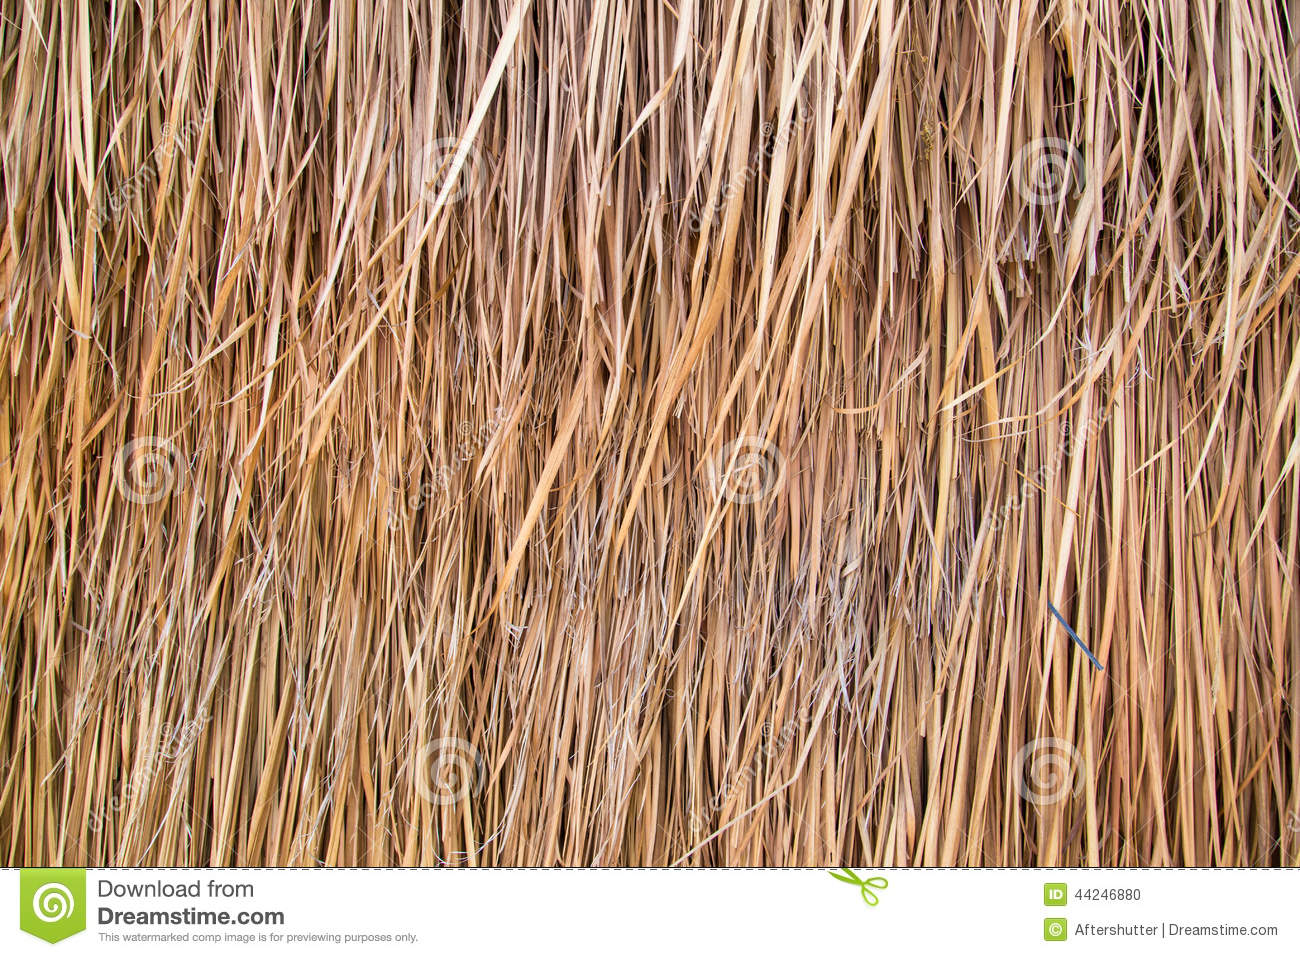 Straw or Dry Grass Background Surface Texture Pattern